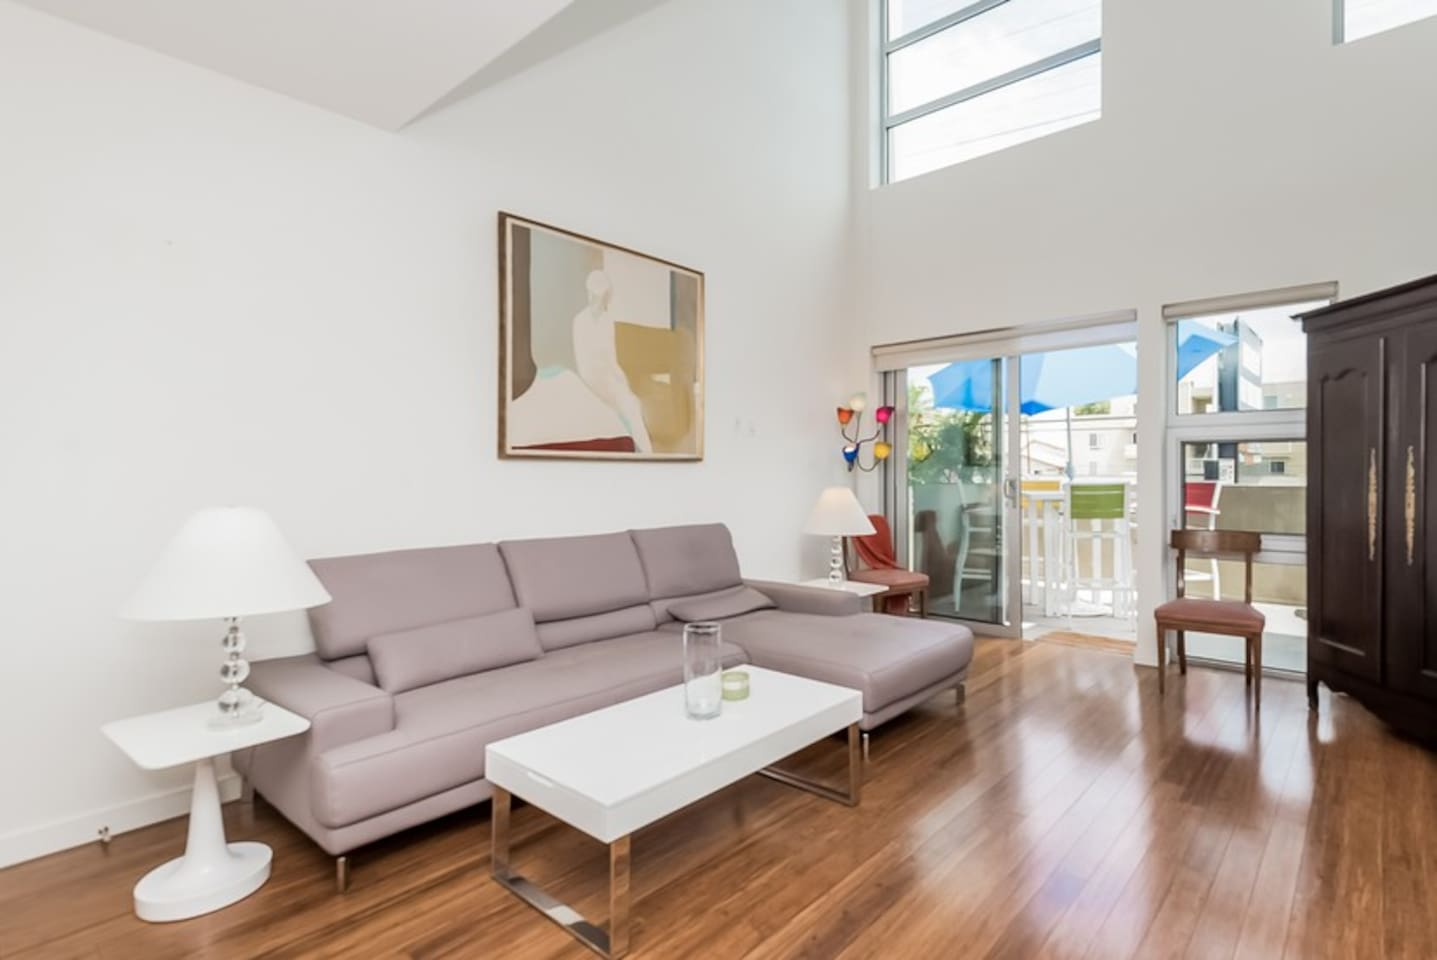 Clean open loft space with high ceilings and private outdoor patio.